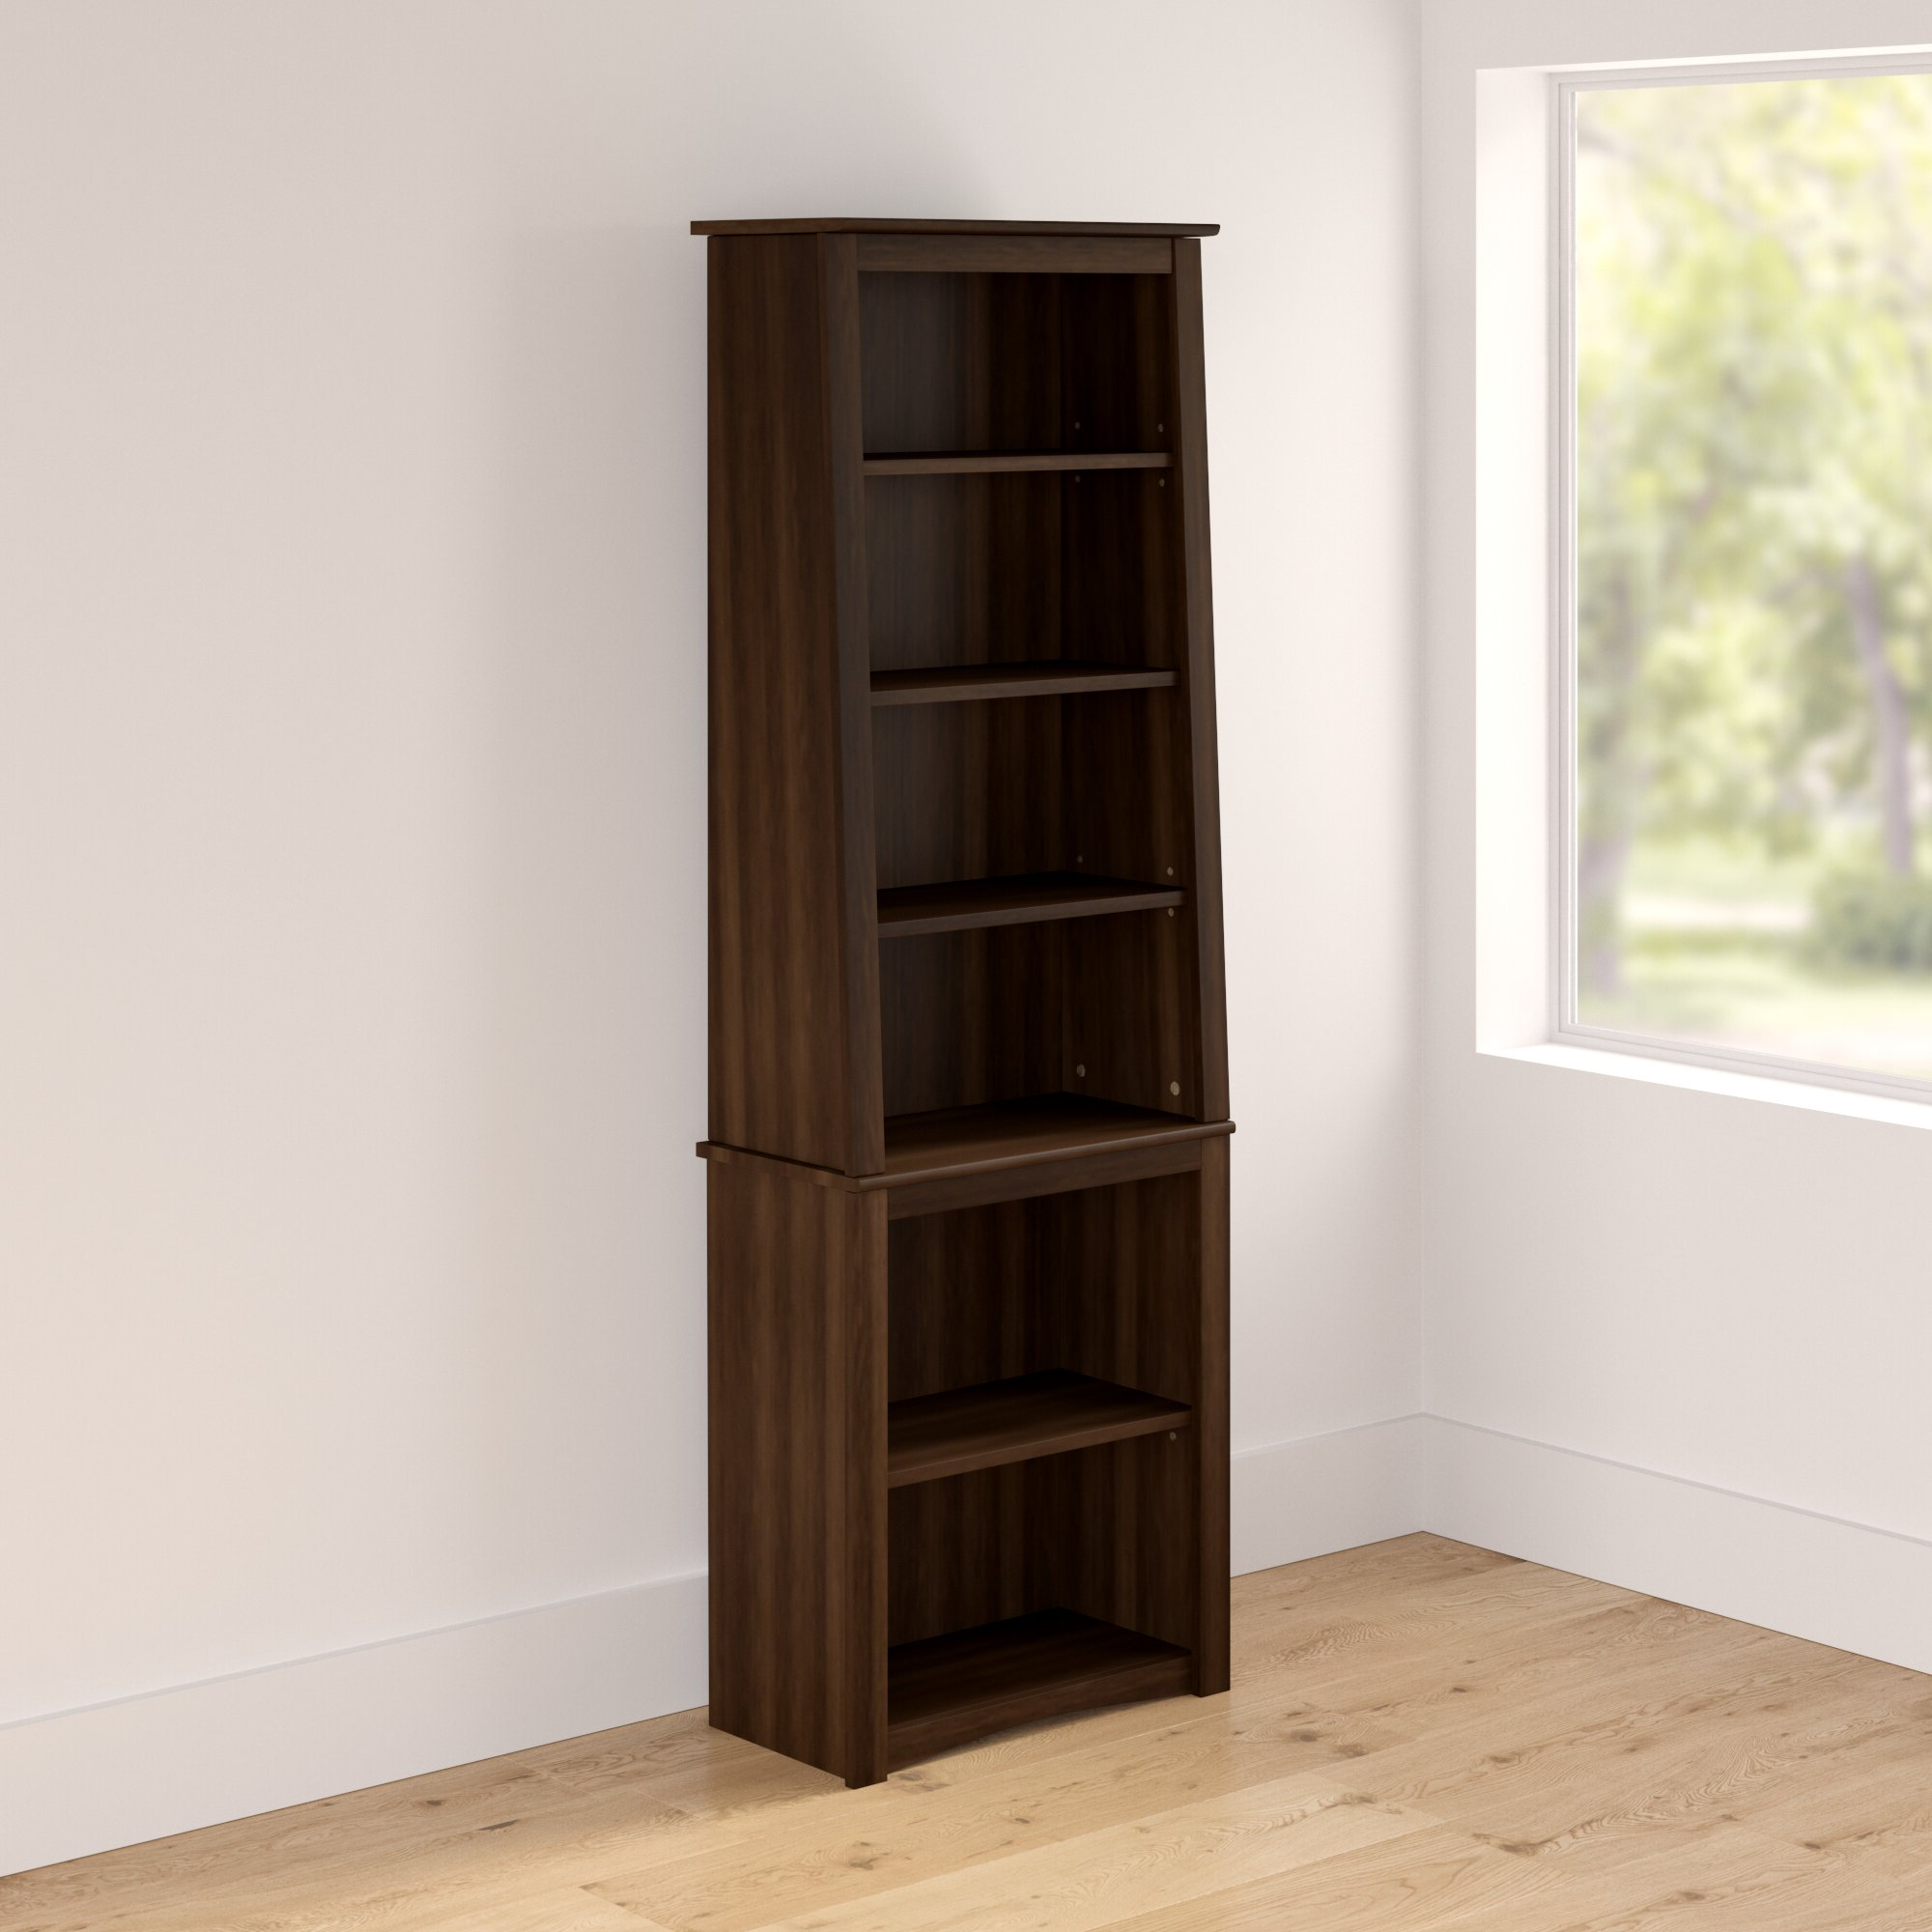 Dowlen Standard Bookcase Throughout Well Known Walworth Standard Bookcases (Gallery 15 of 20)